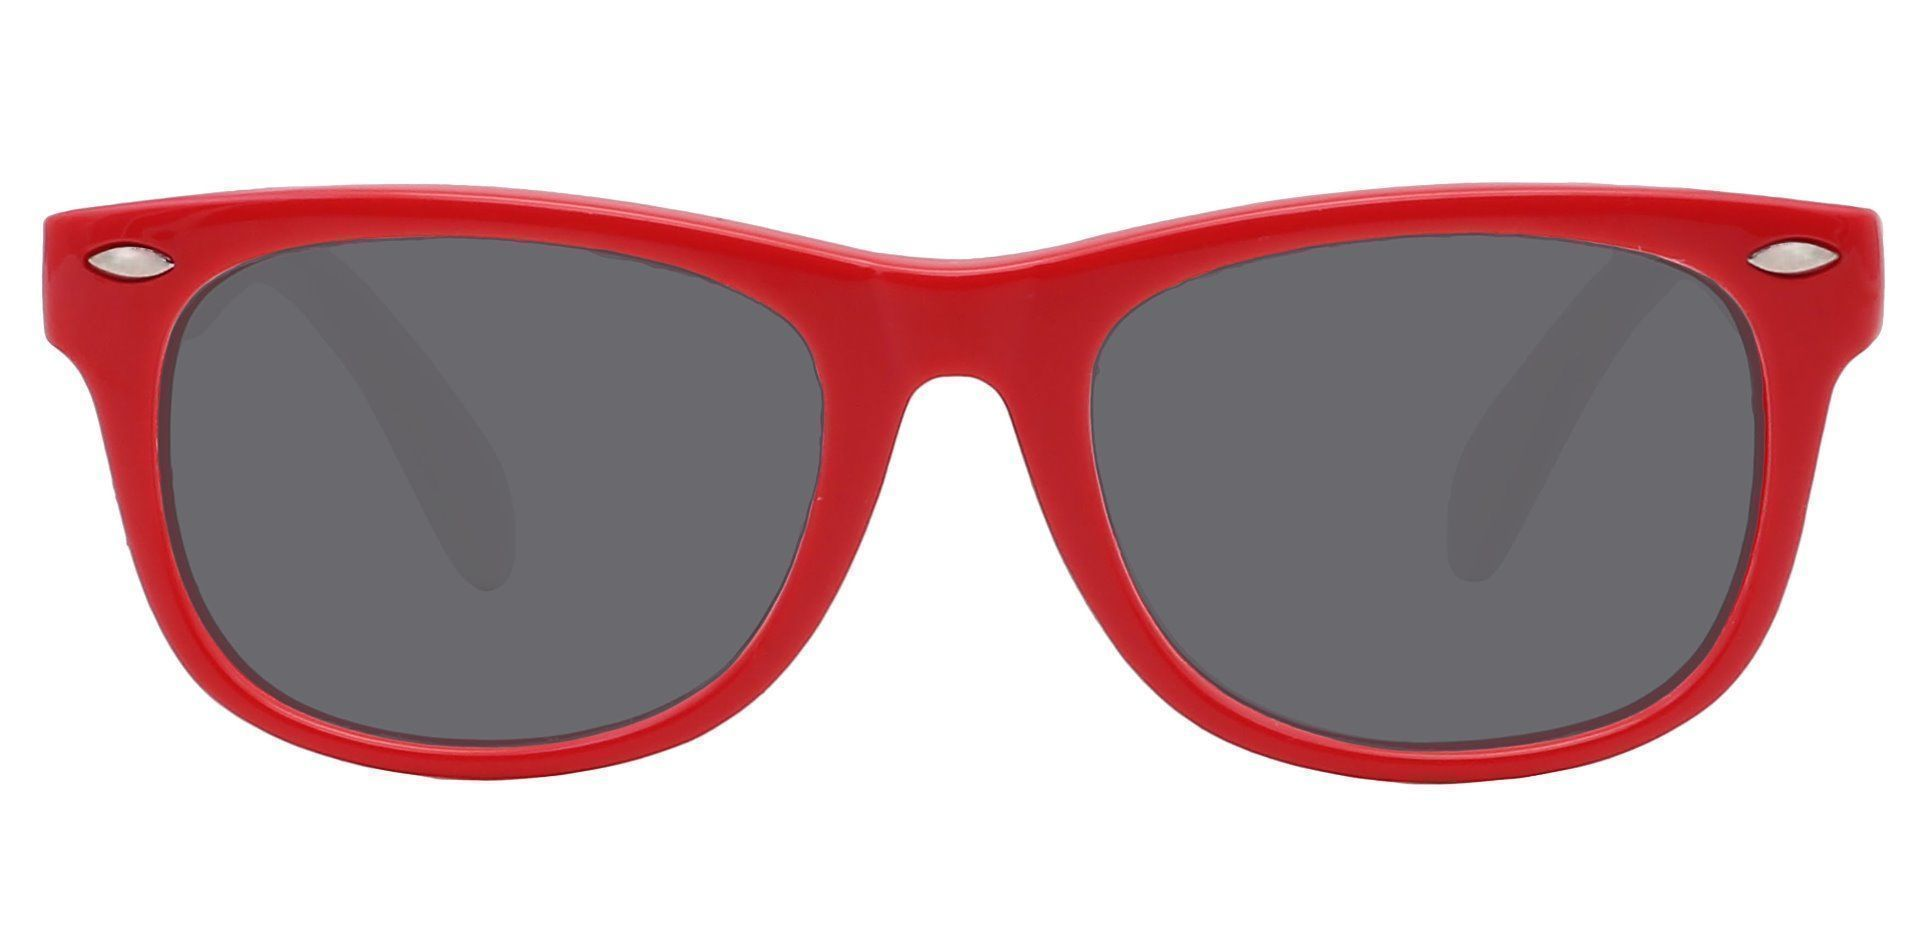 Wren Square Single Vision Sunglasses - Red Frame With Gray Lenses